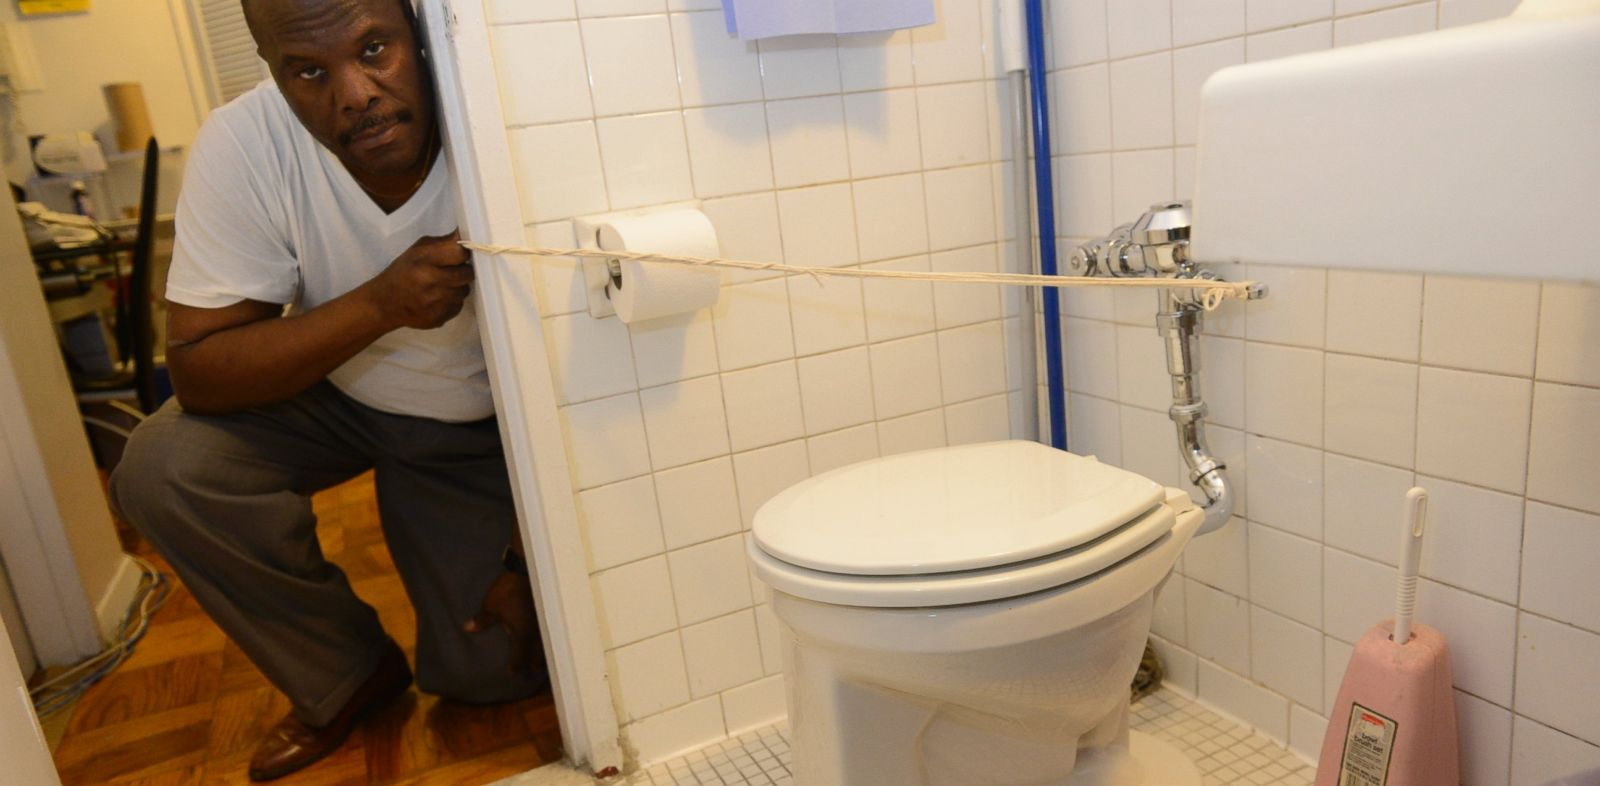 PHOTO: Michel Pierre, pictured using a rope to flush his repaired toilet, Oct. 9, 2013.